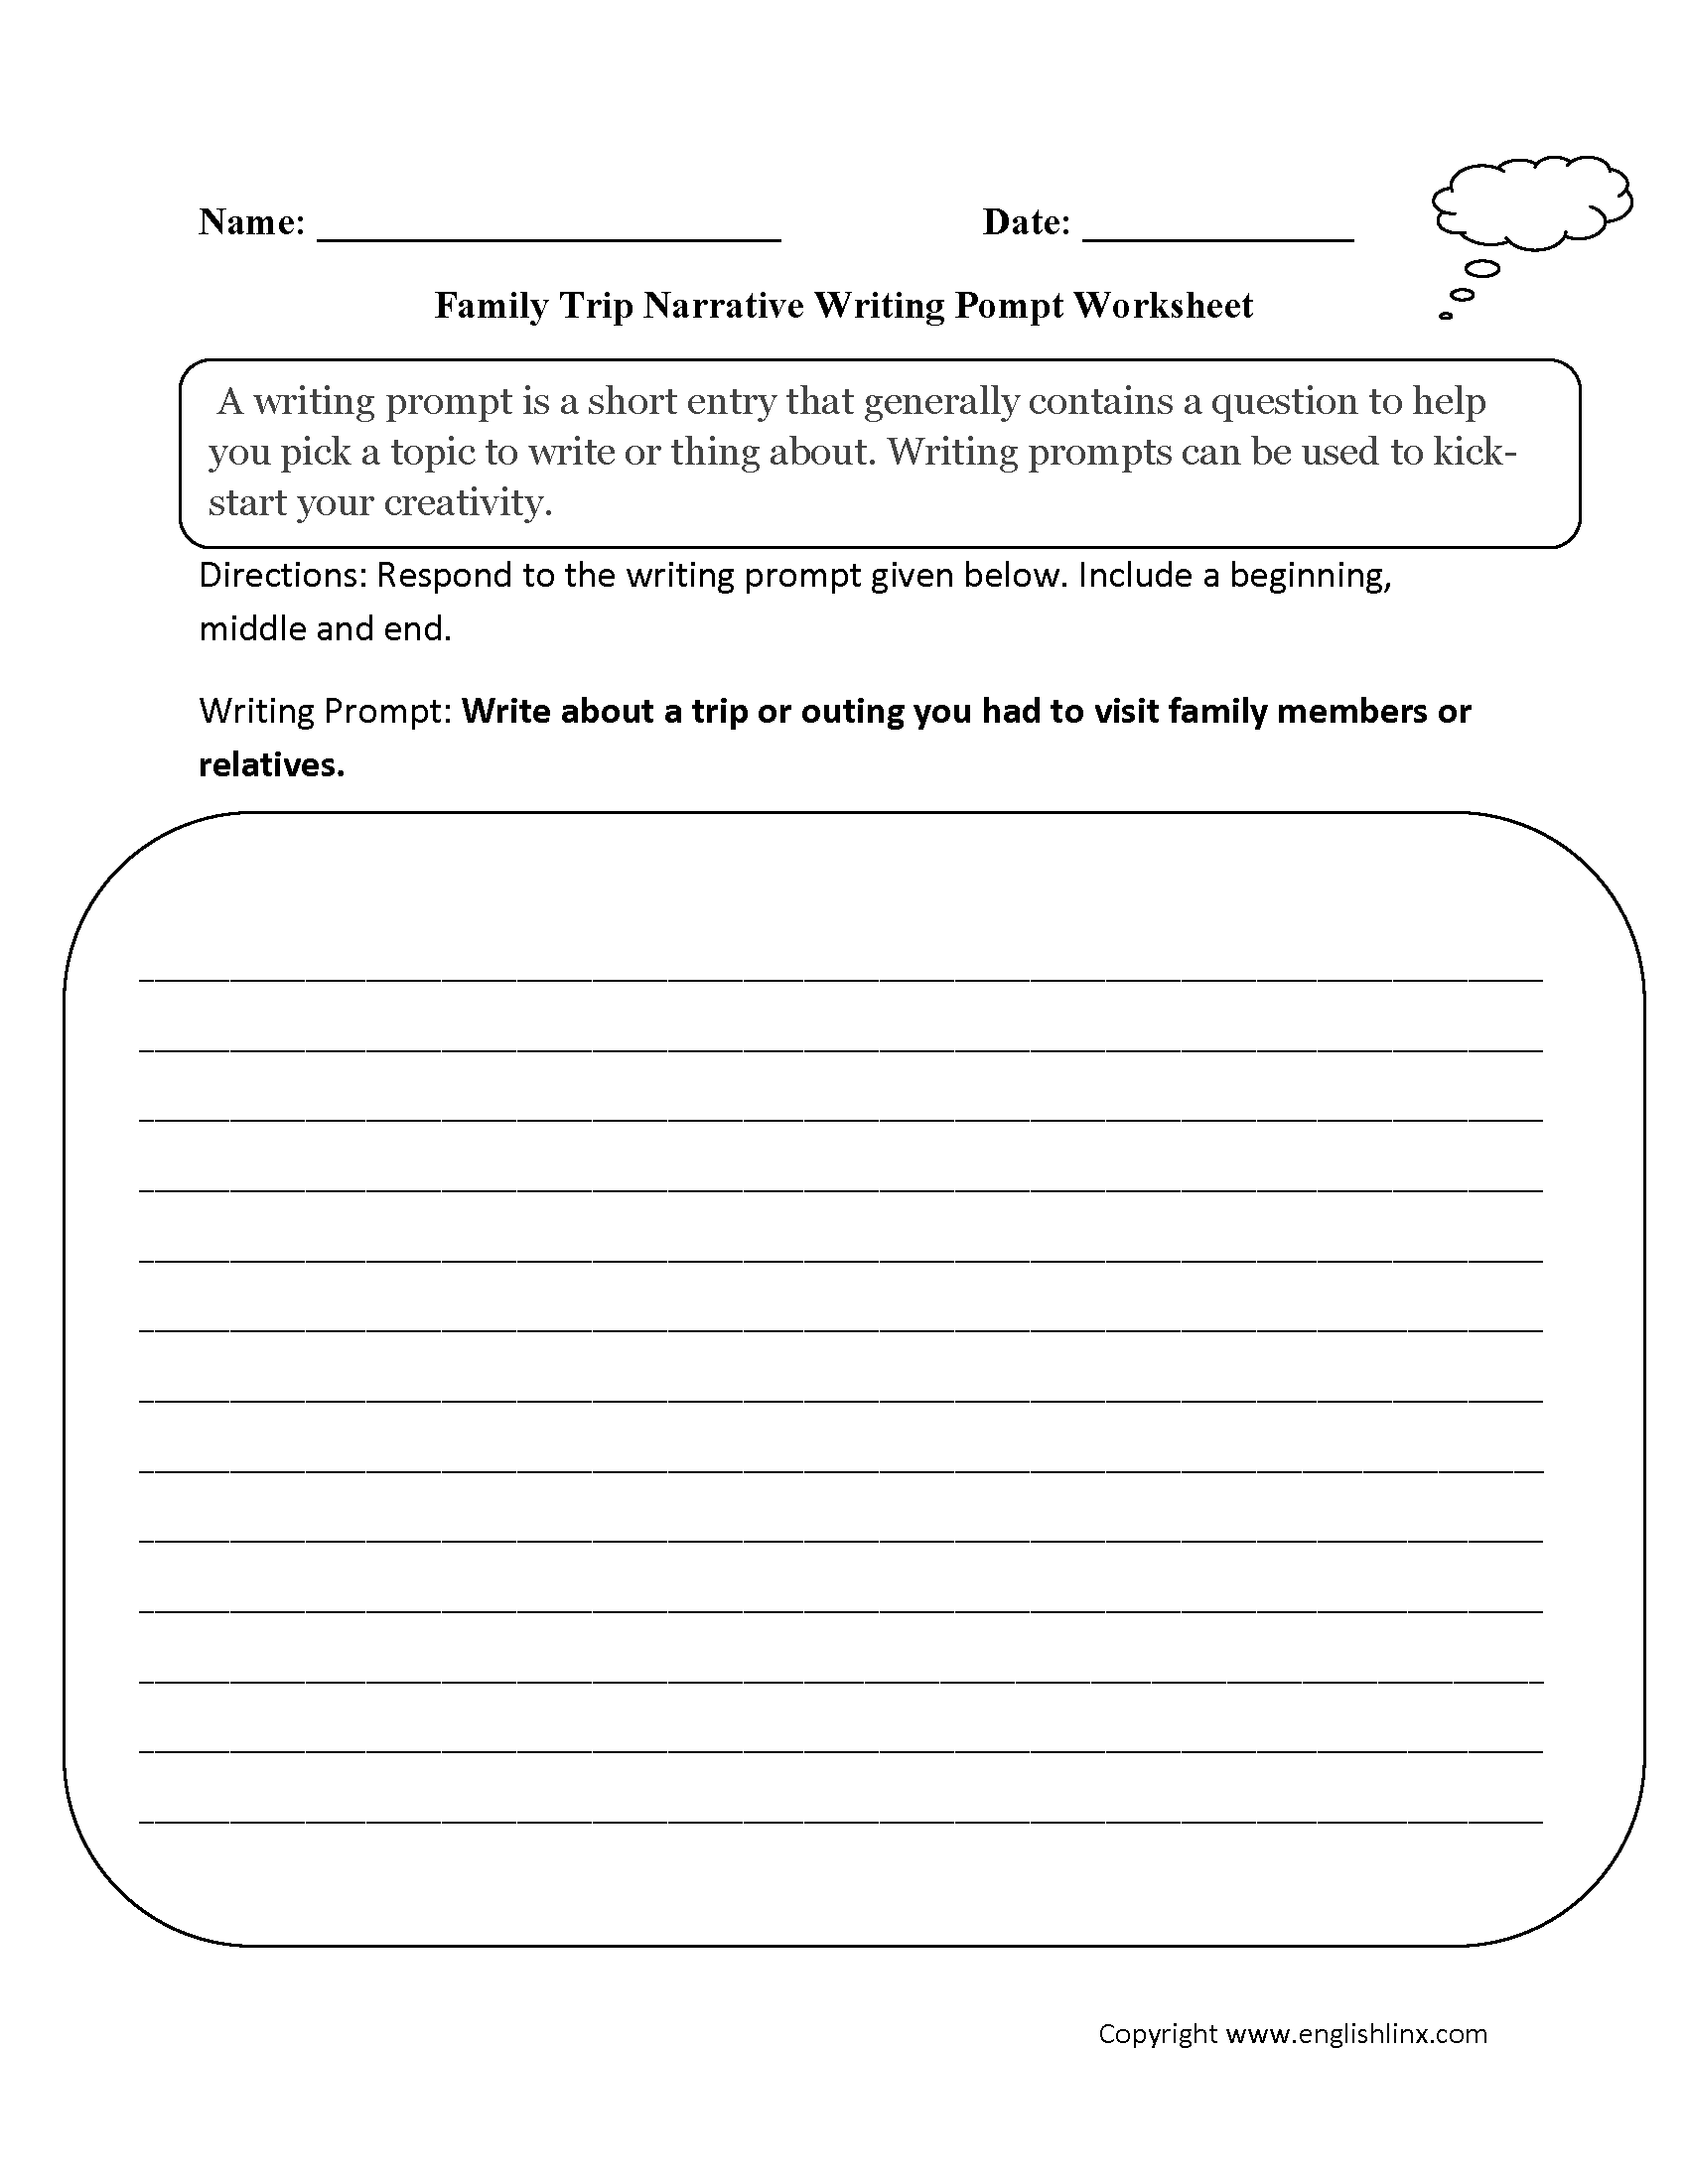 Printables Writing Prompts Worksheets englishlinx com writing prompts worksheets worksheets